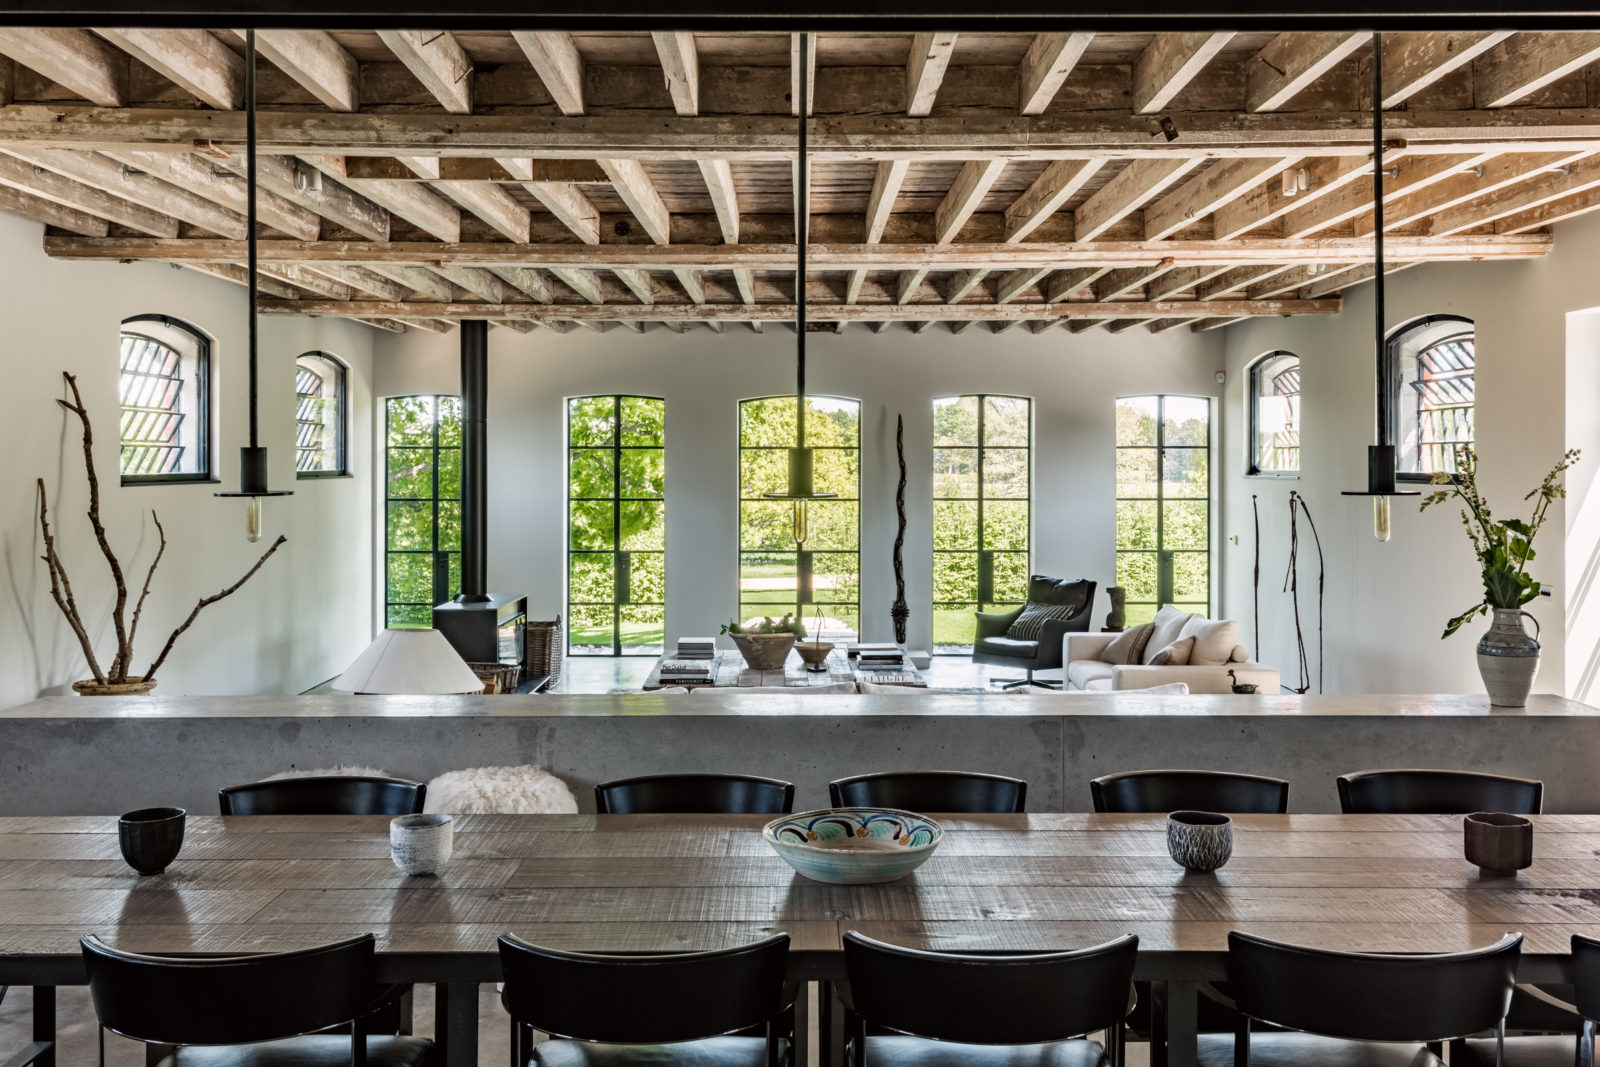 The Nordroom - A Barn Conversion In The English Countryside